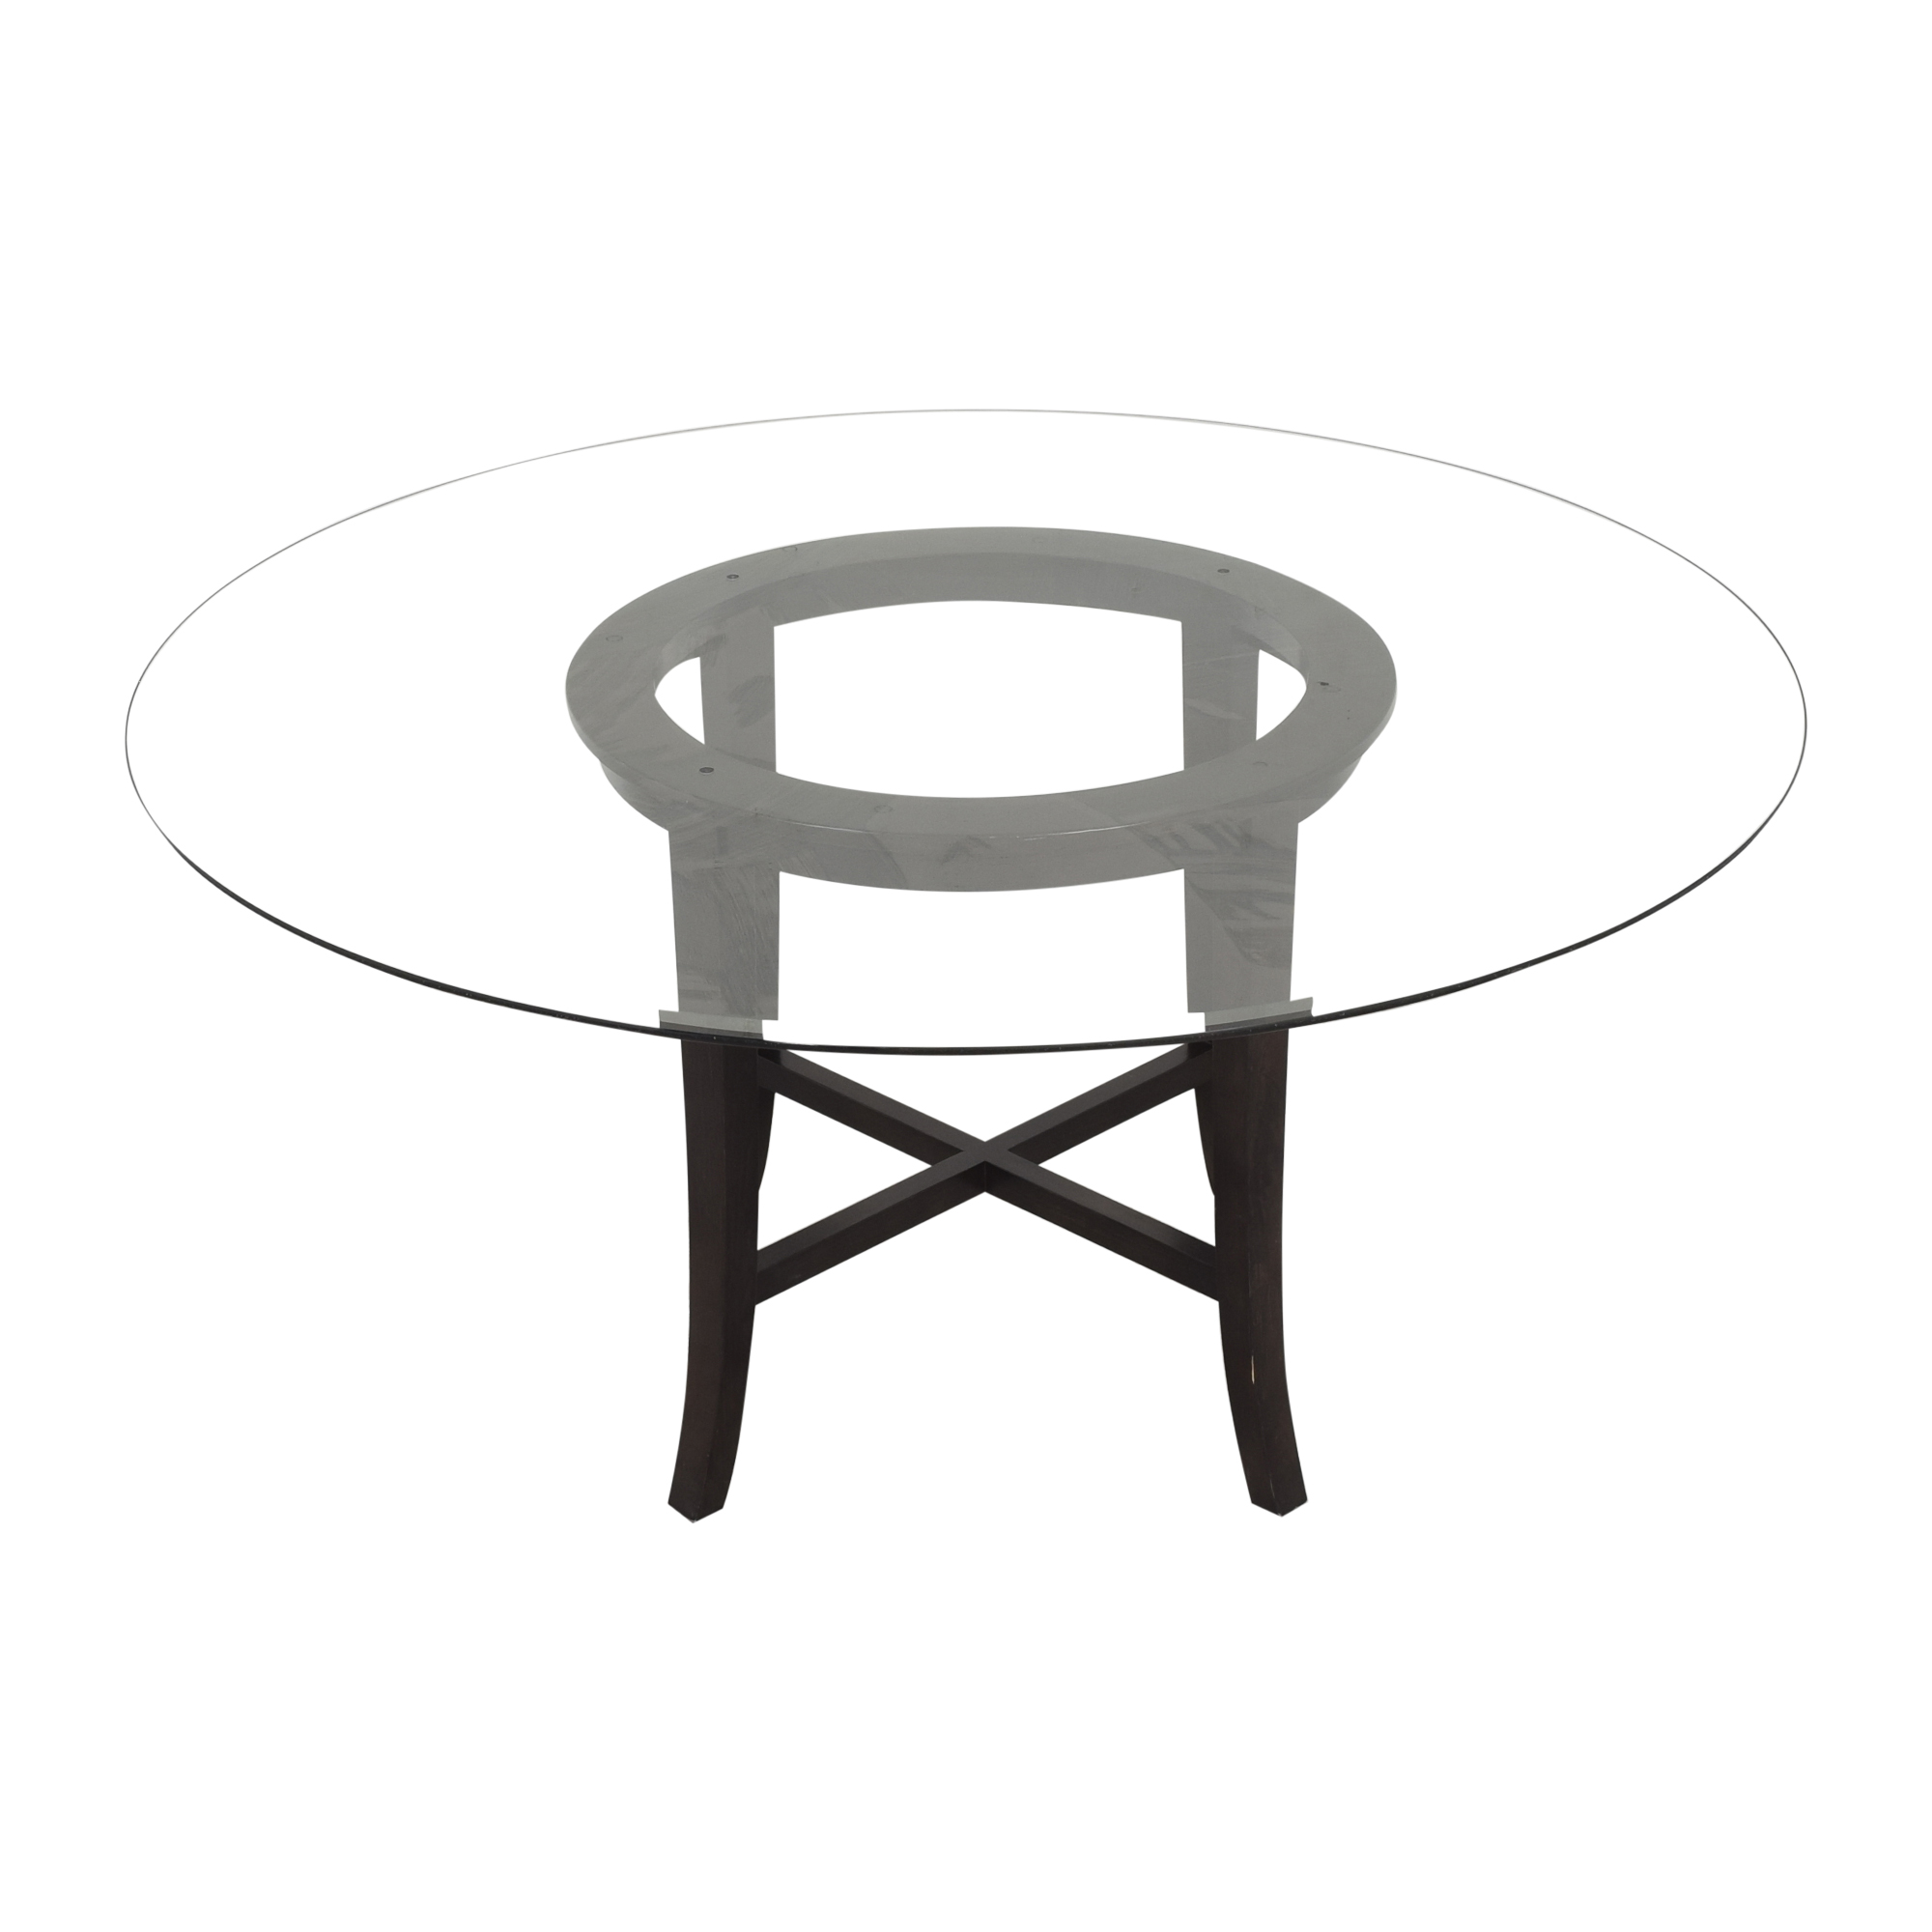 Crate & Barrel Crate & Barrel Halo Dining Table with Transparent Surface ma